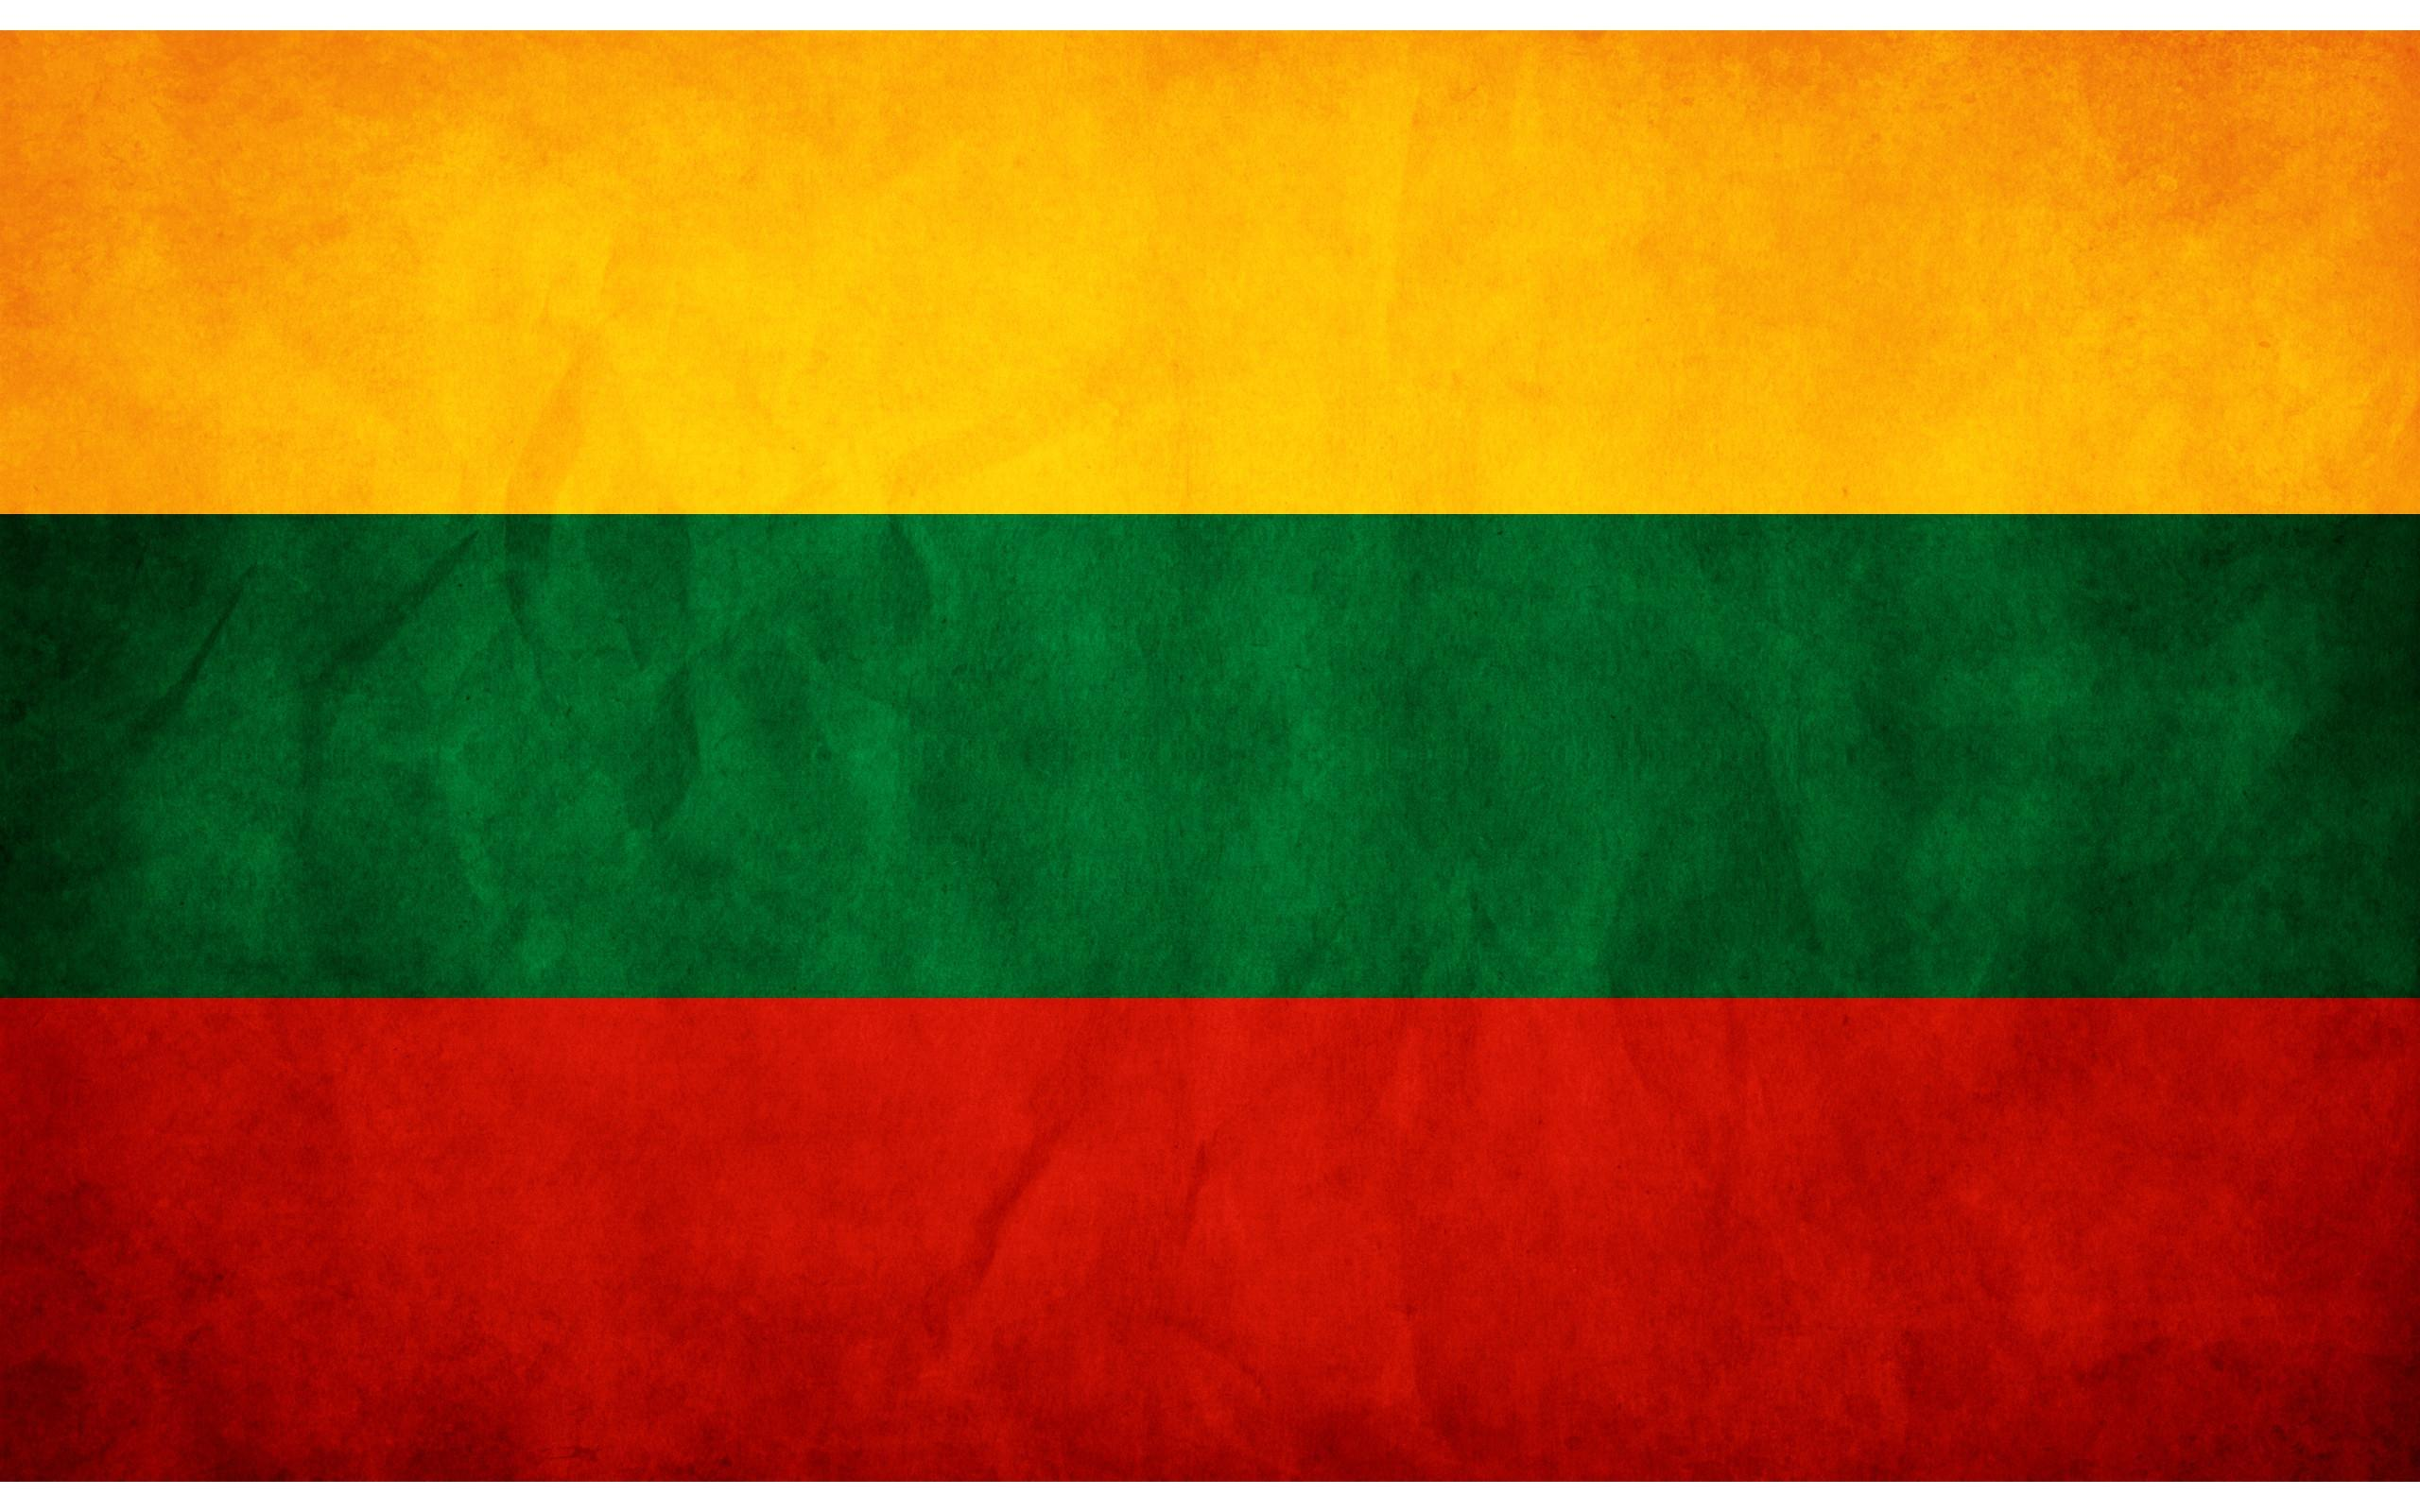 Flag of Bolivia - Symbol of Prosperity and Values: Facts Images ...